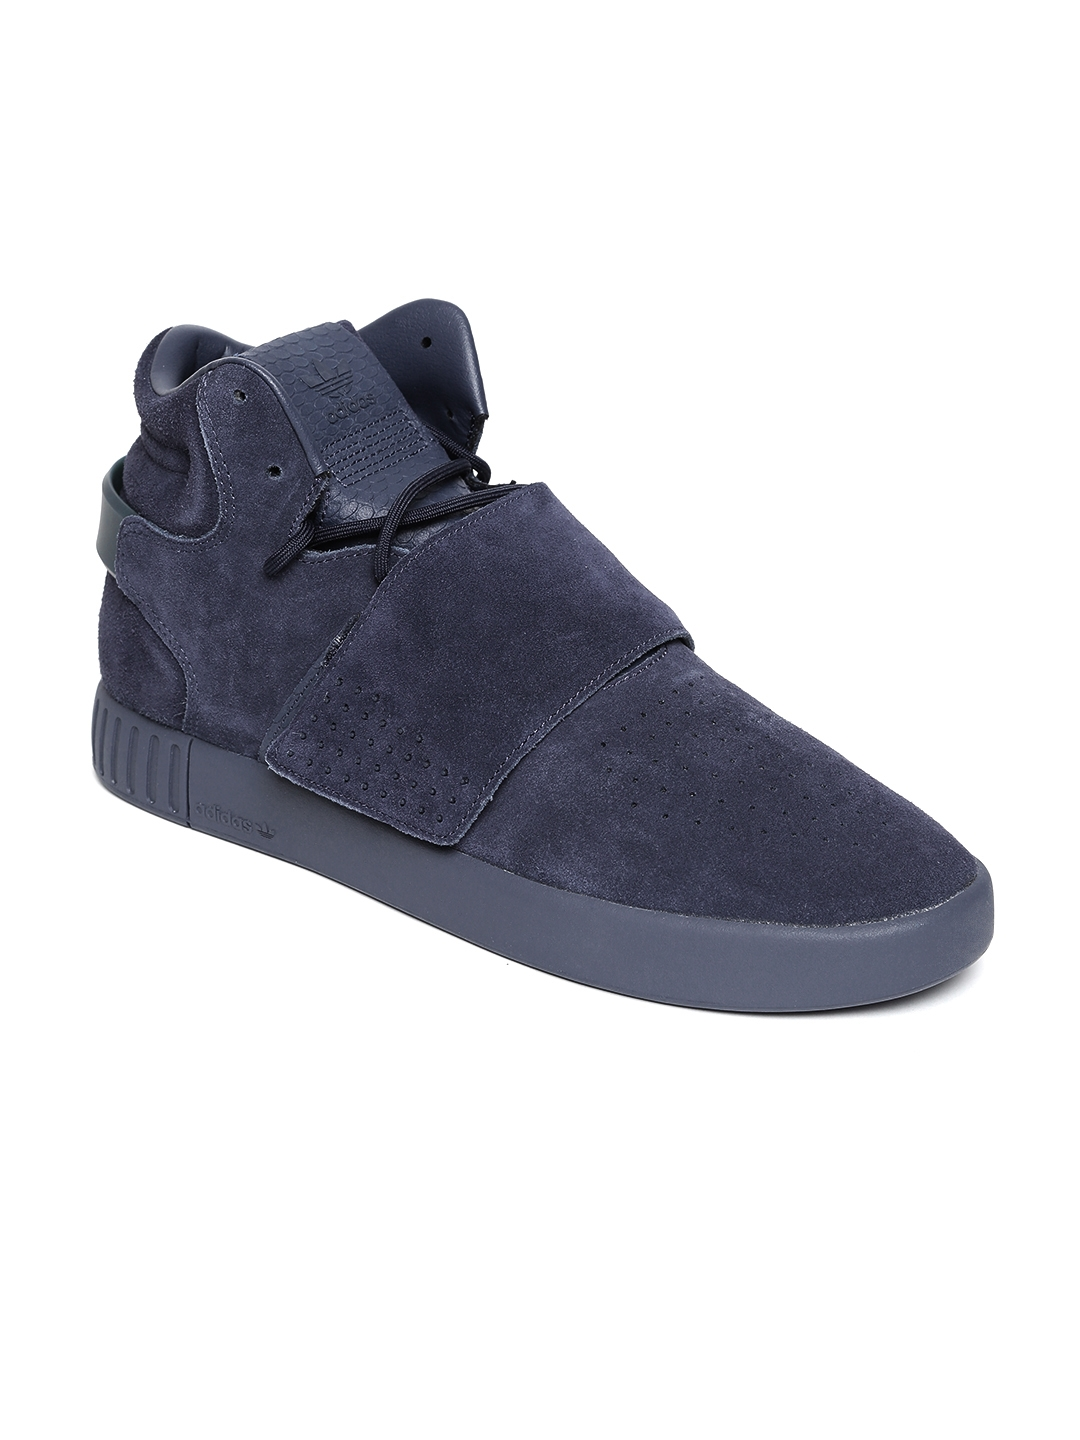 243338f3898df5 ADIDAS Originals Men Purple Tubular Invader Strap Mid-Top Leather Sneakers